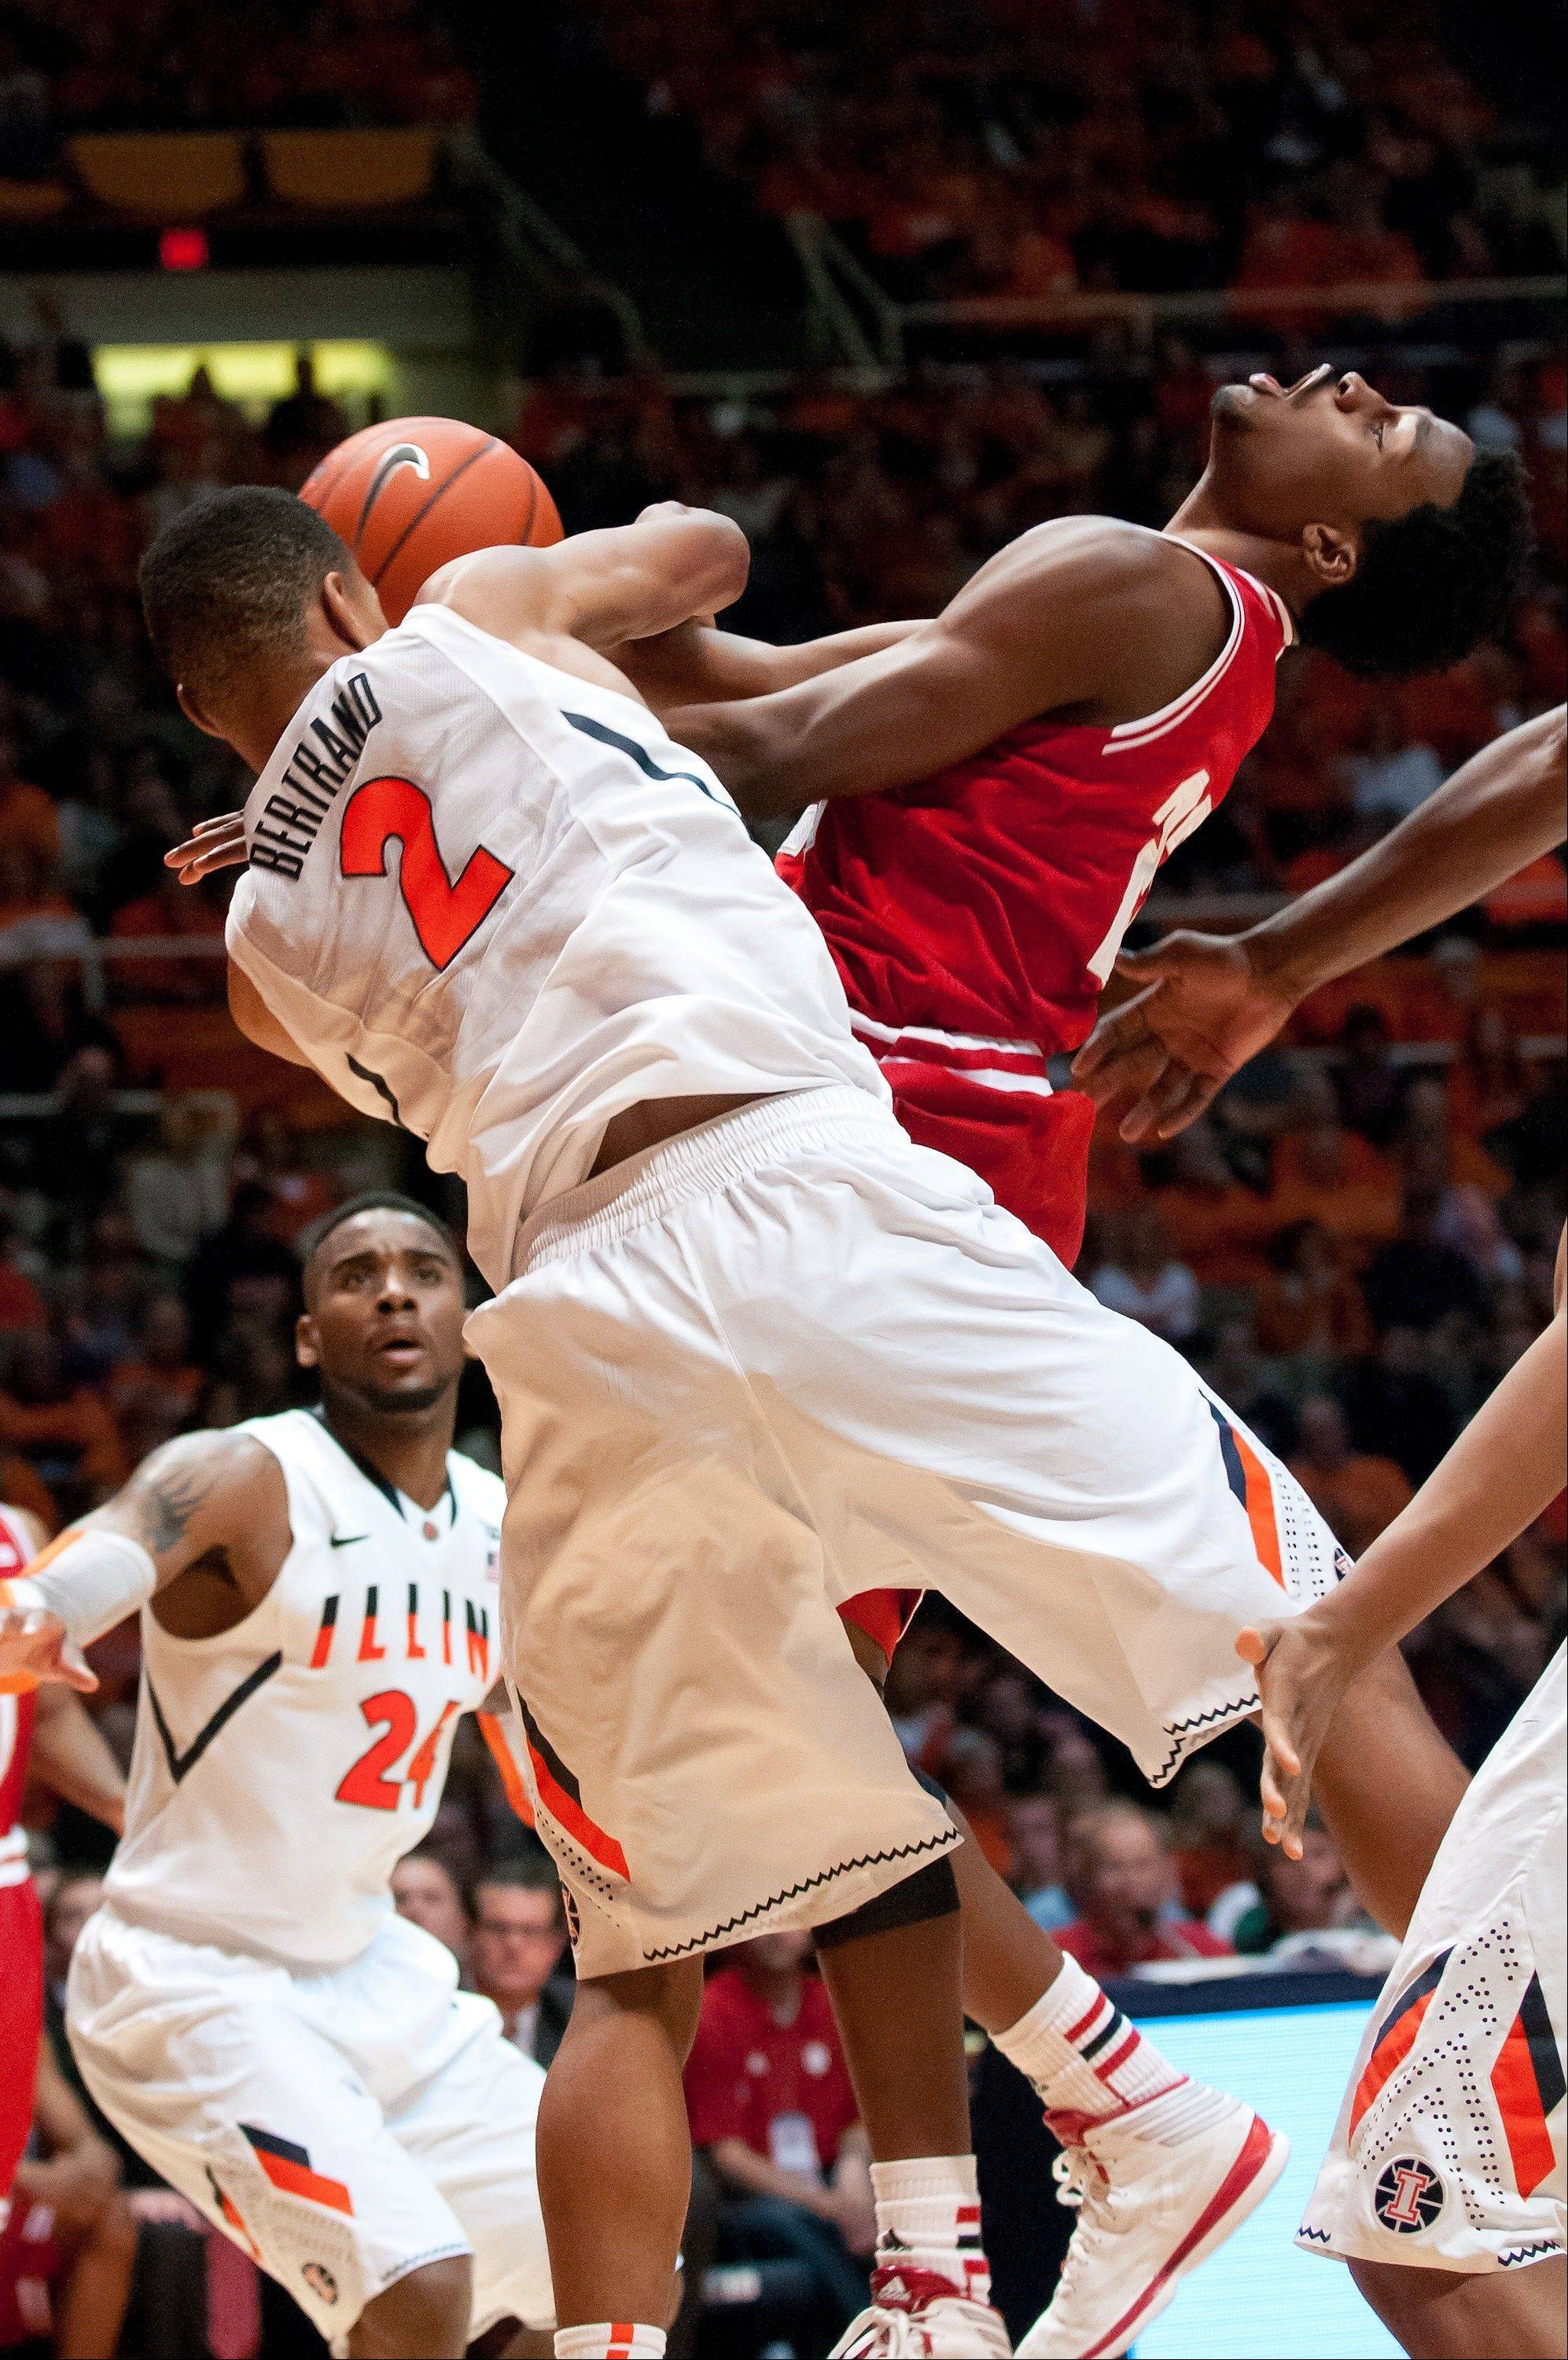 Illinois holds off Indiana in overtime, 83-80